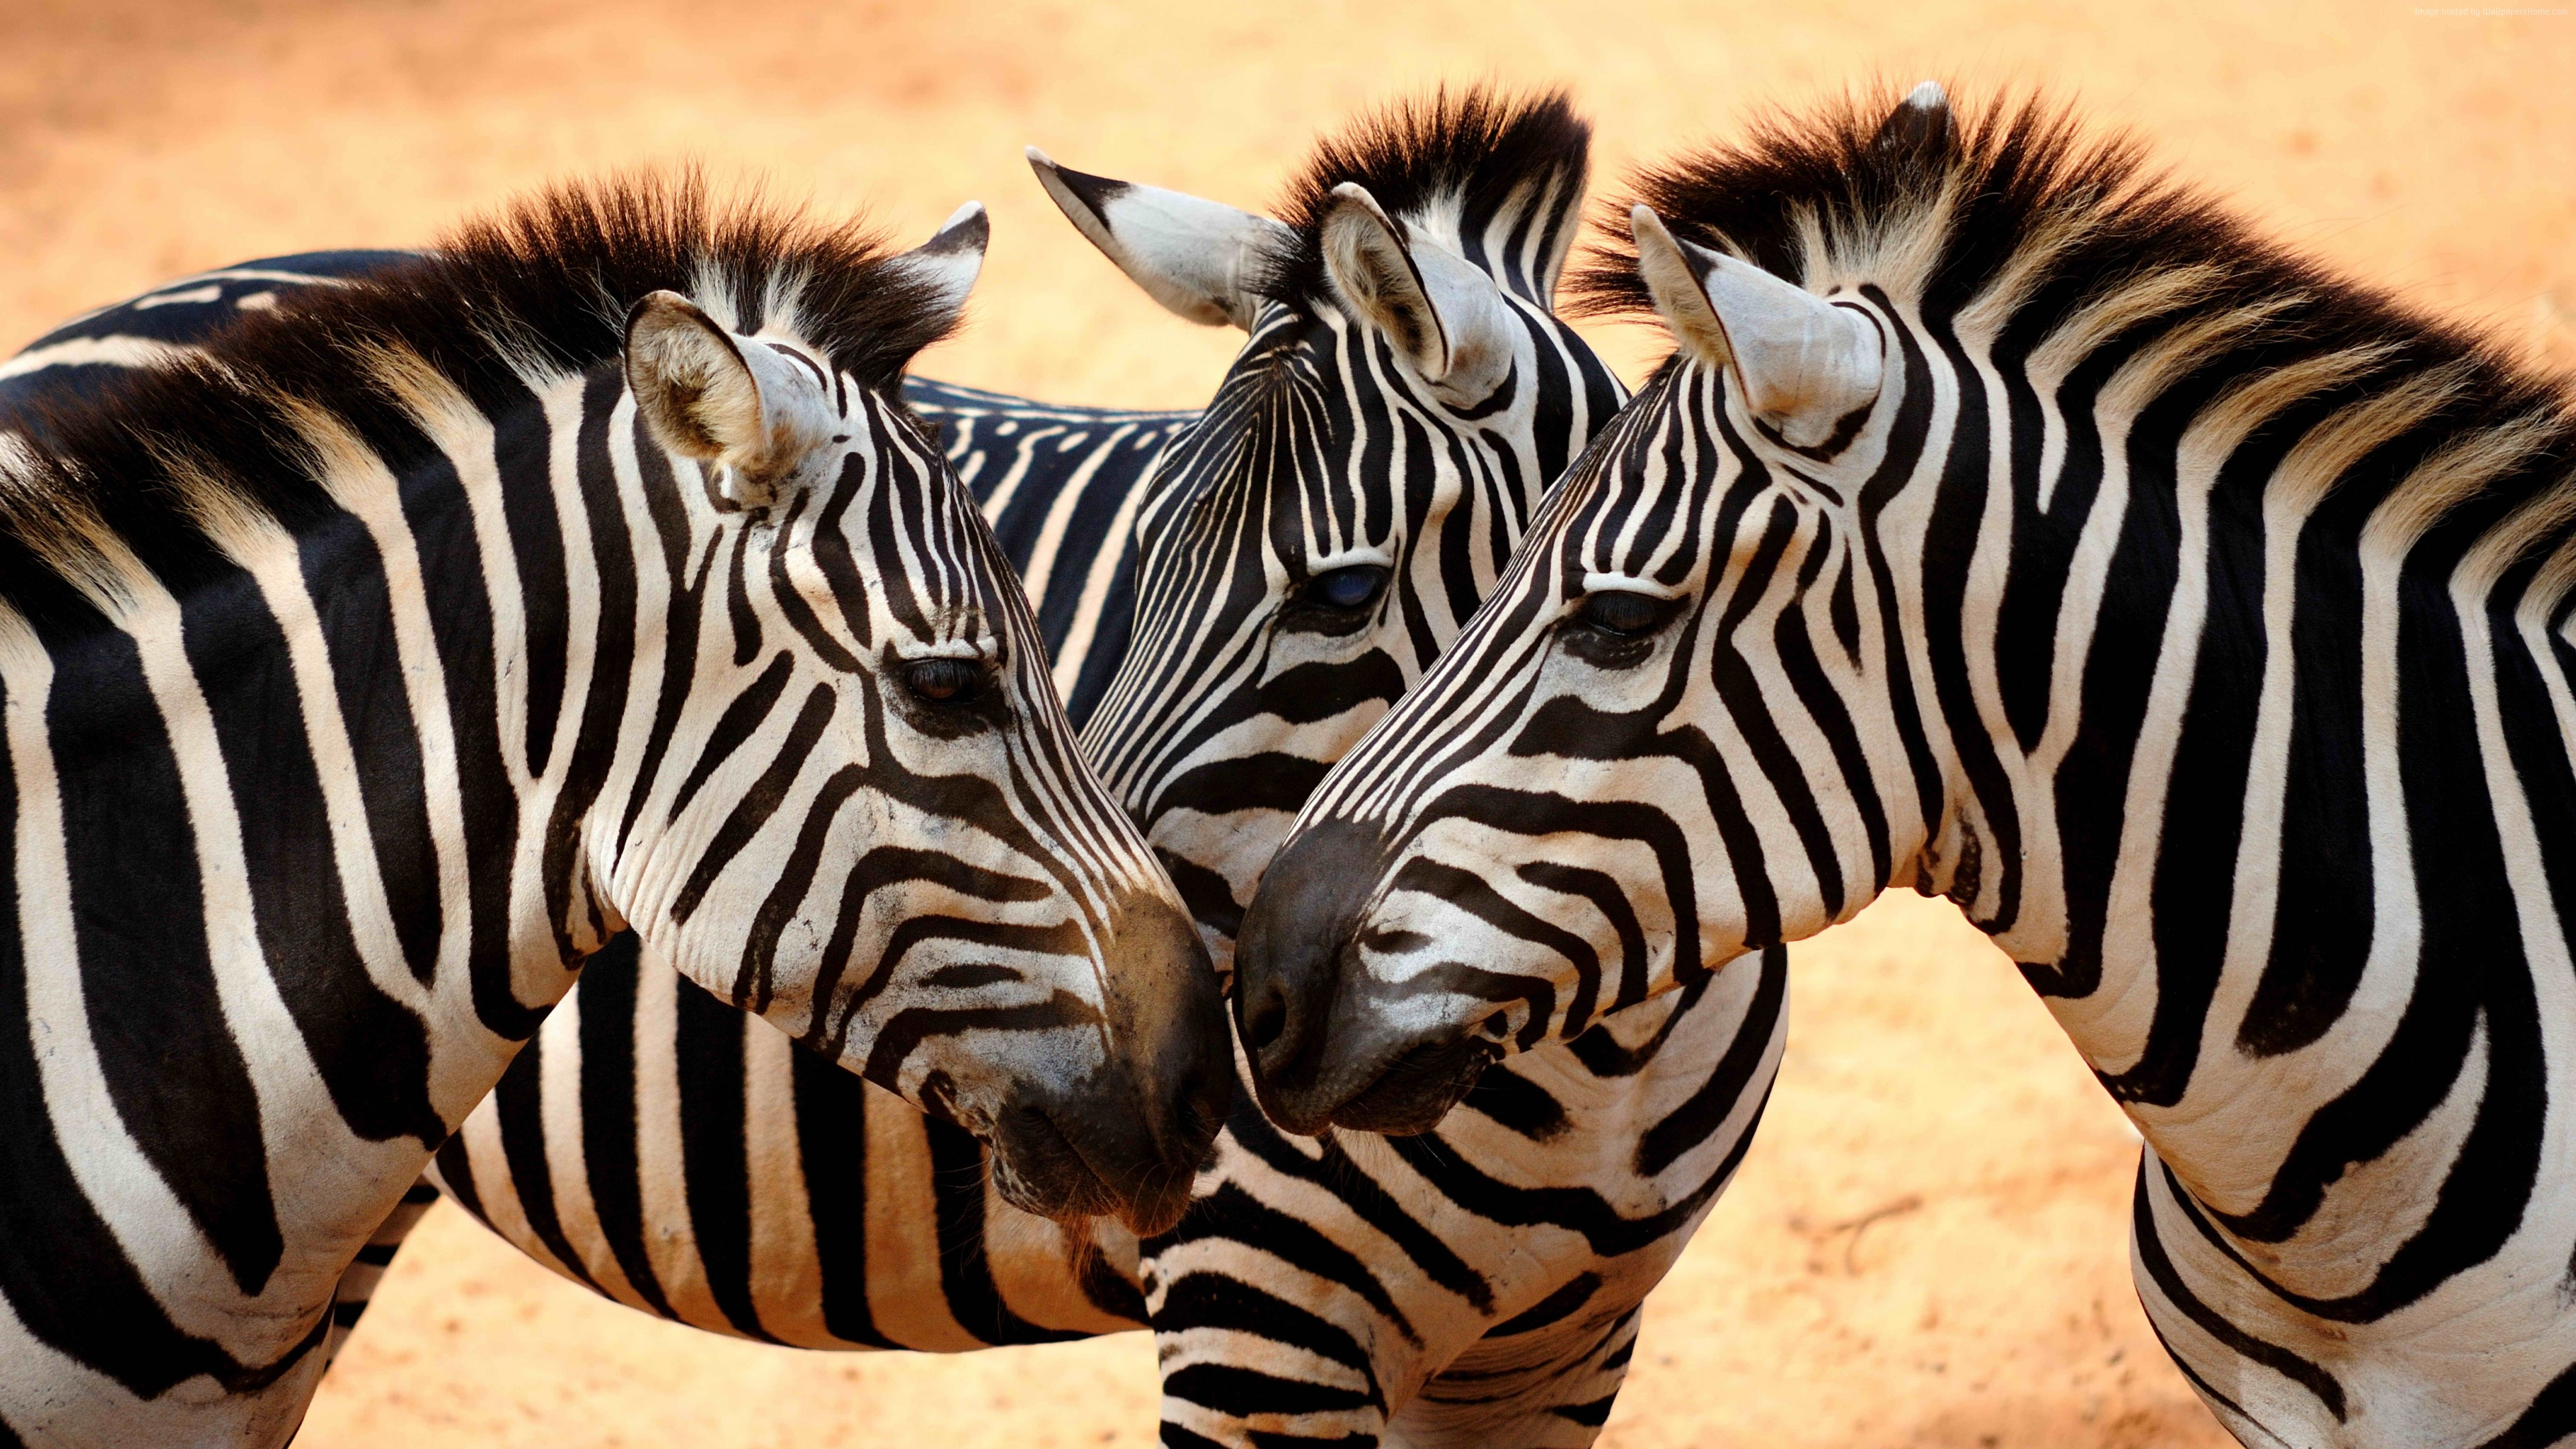 Wallpaper Zebra, couple, cute animals, Animals